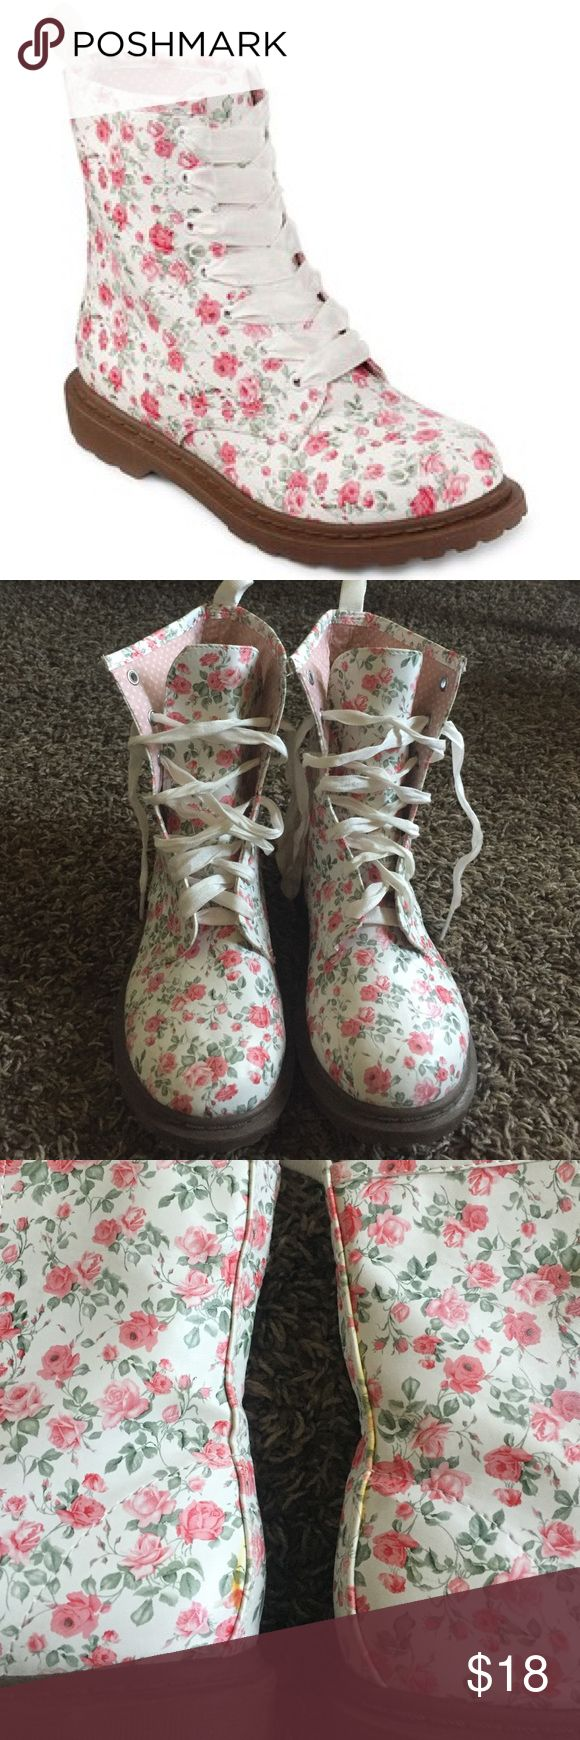 1000  ideas about Cute Combat Boots on Pinterest | Combat boots ...